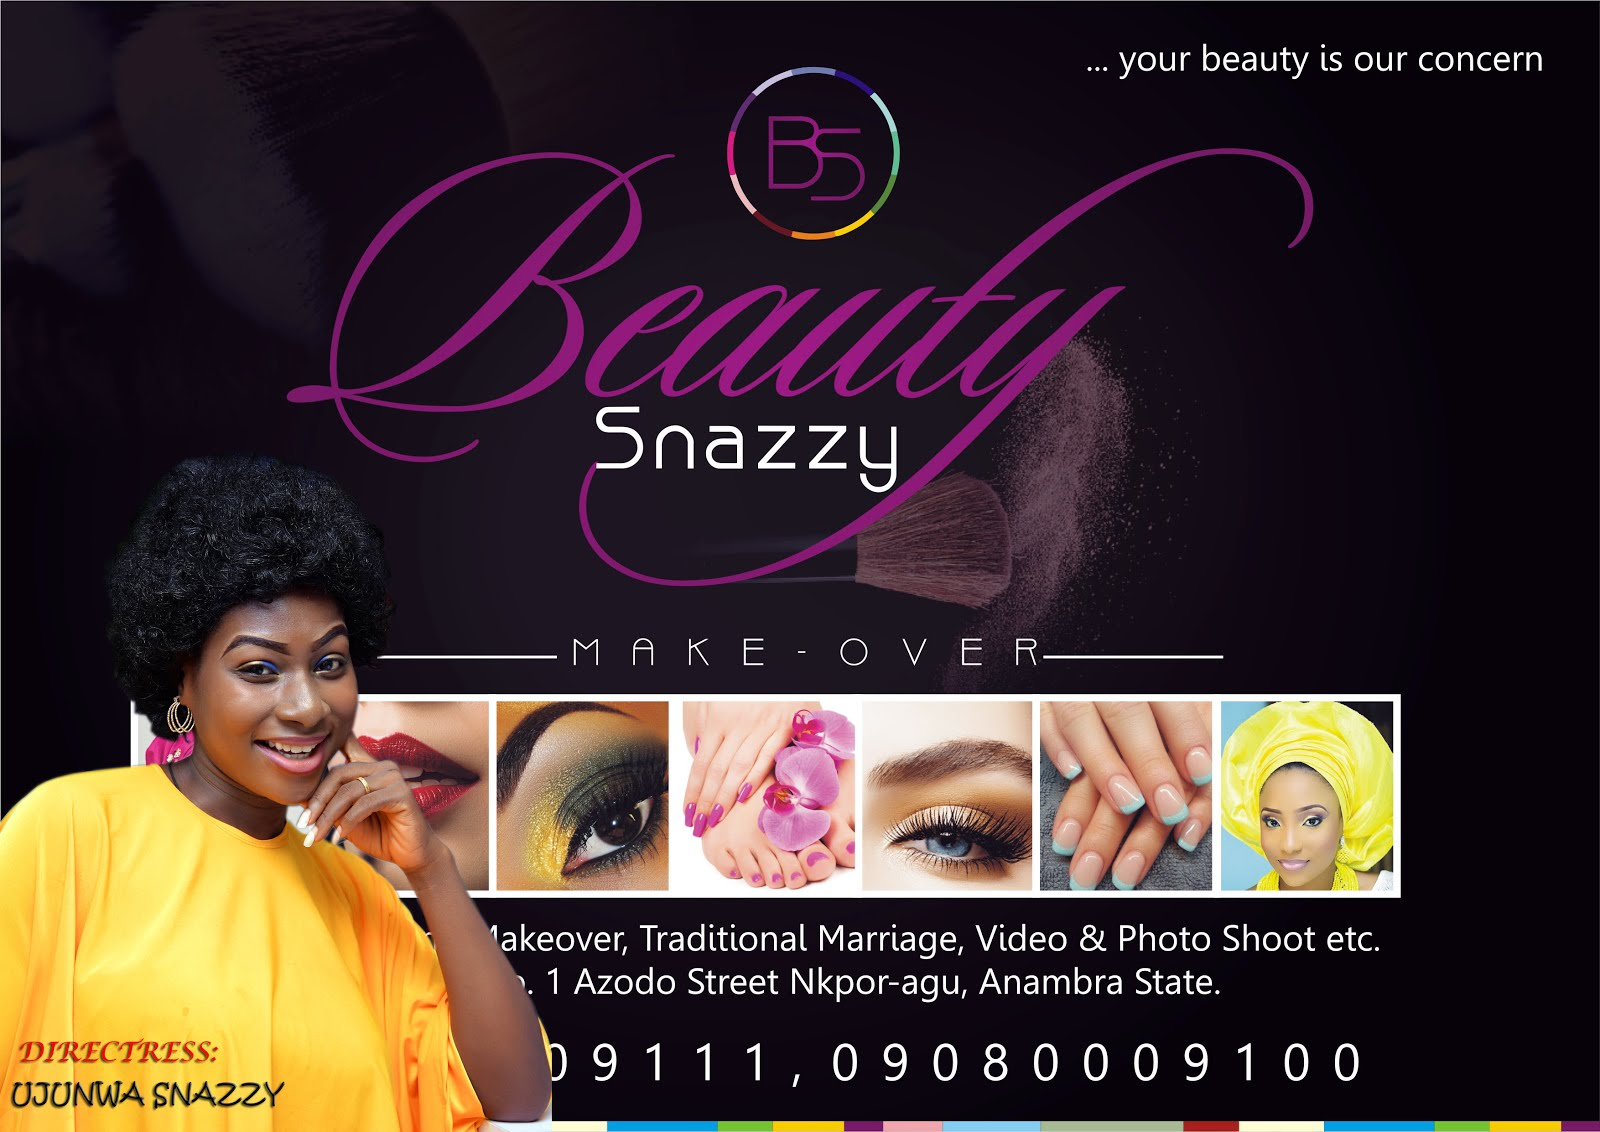 BEAUTY SNAZZY MAKEOVER